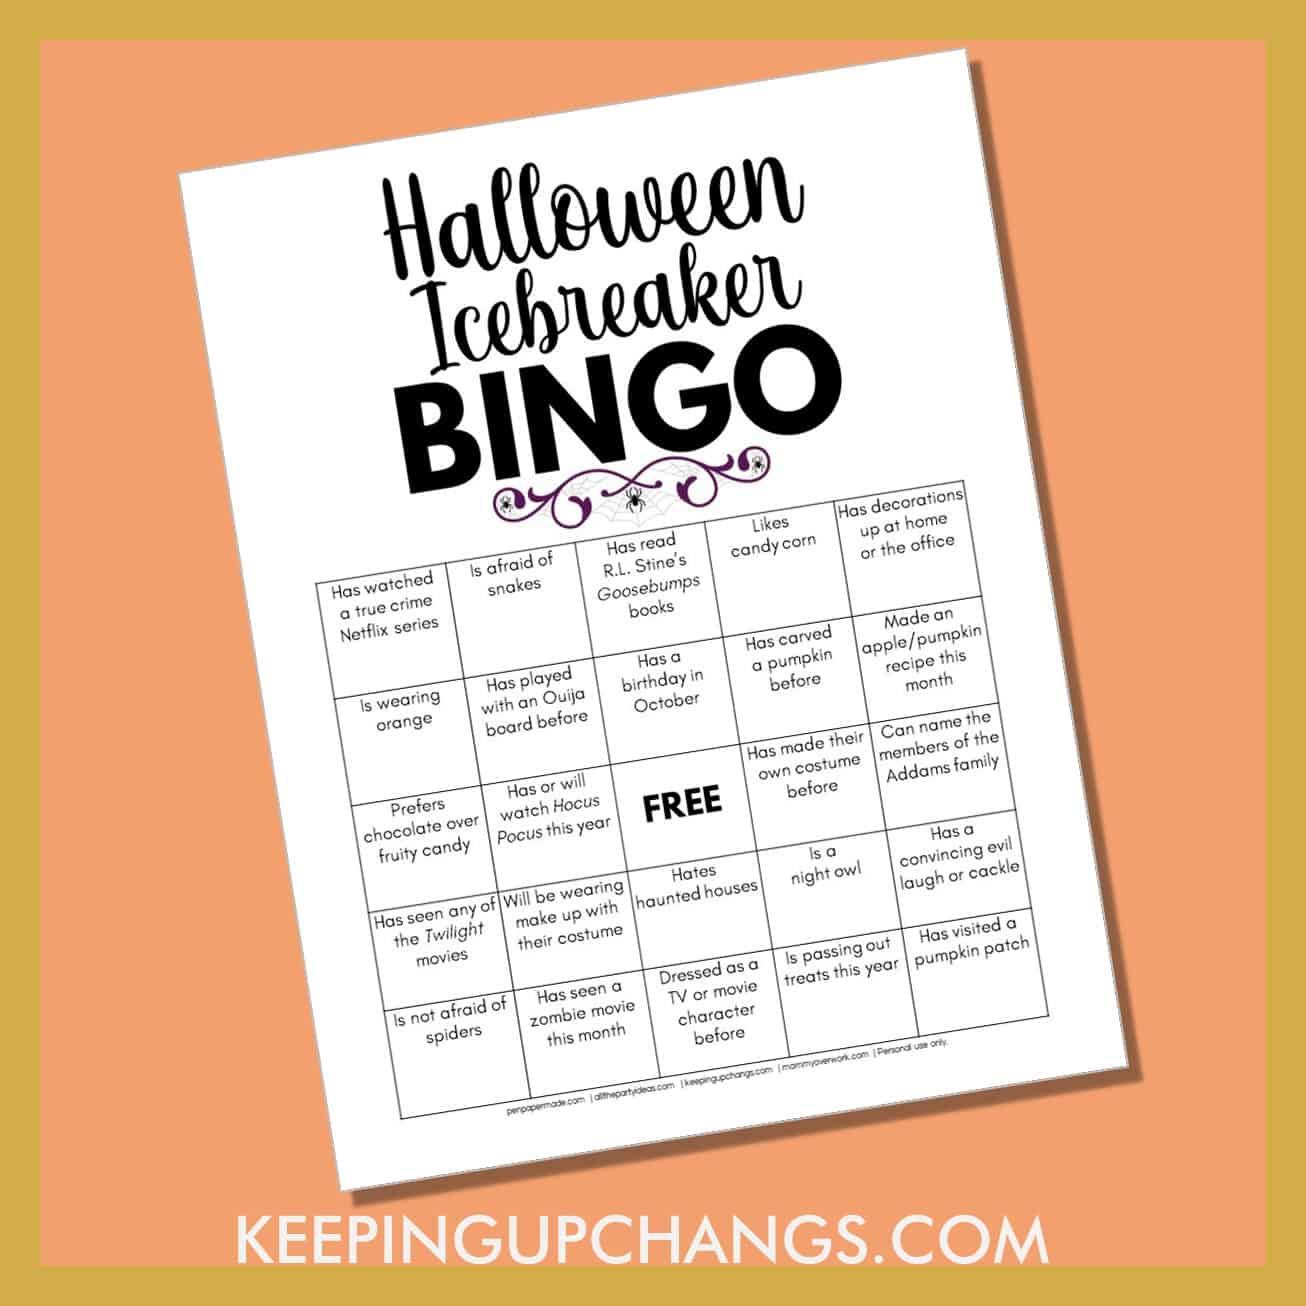 human halloween icebreaker bingo with fun getting to know you facts about the spooky holiday.